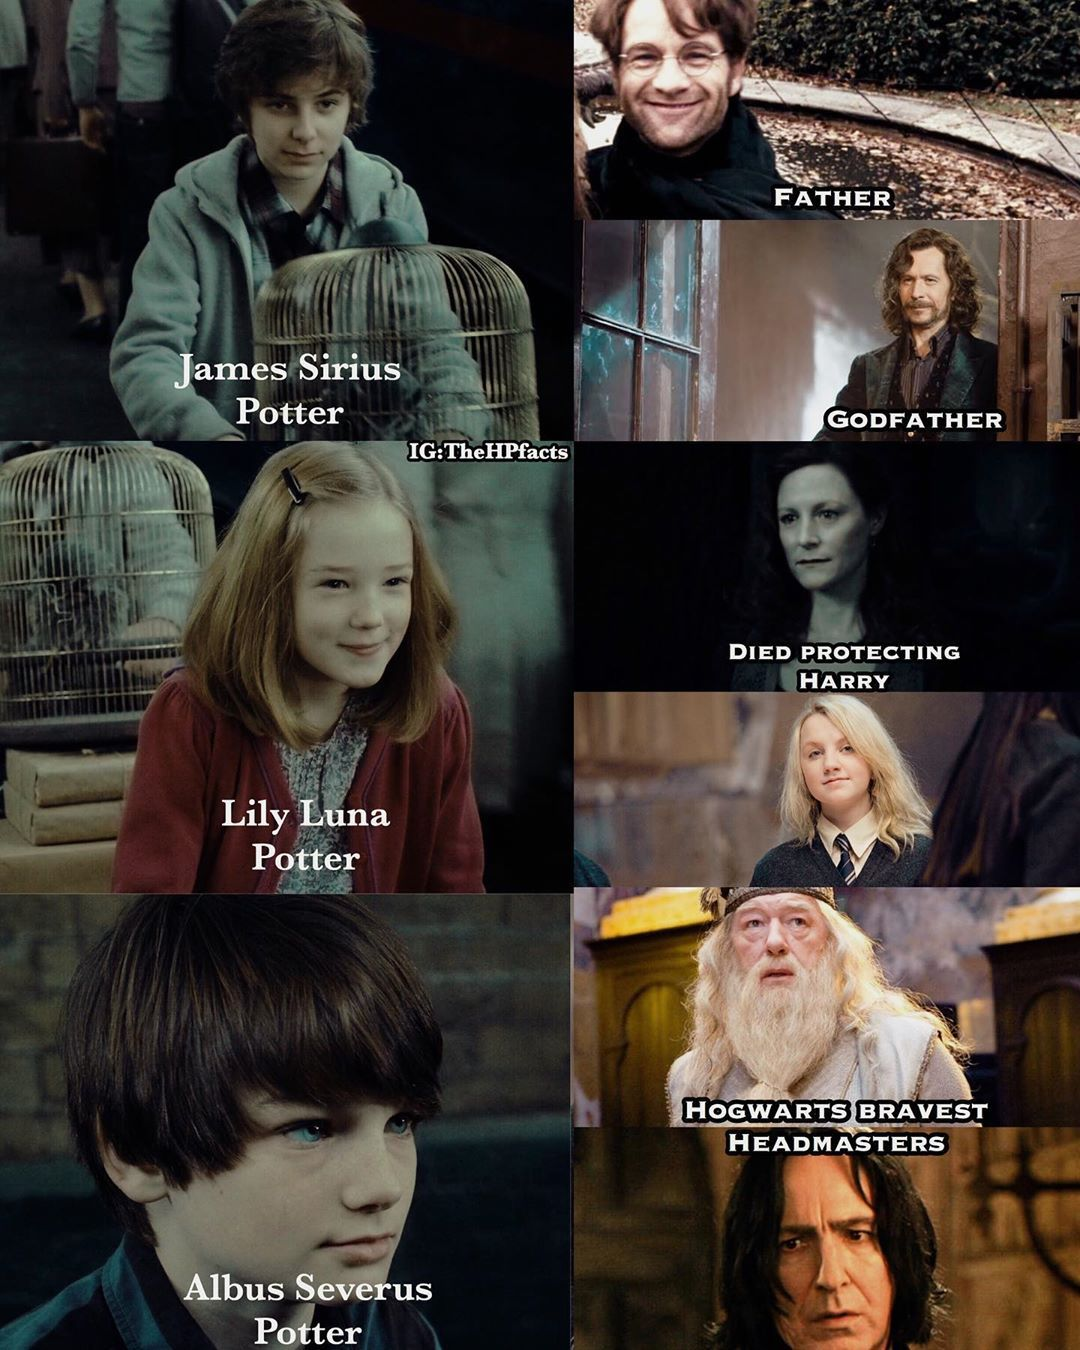 Harry Potter Facts Bts Video On Instagram Any One Tell Me Why Harry Named Her Daughter Harry Potter Feels Harry Potter Characters Names Harry Potter Facts